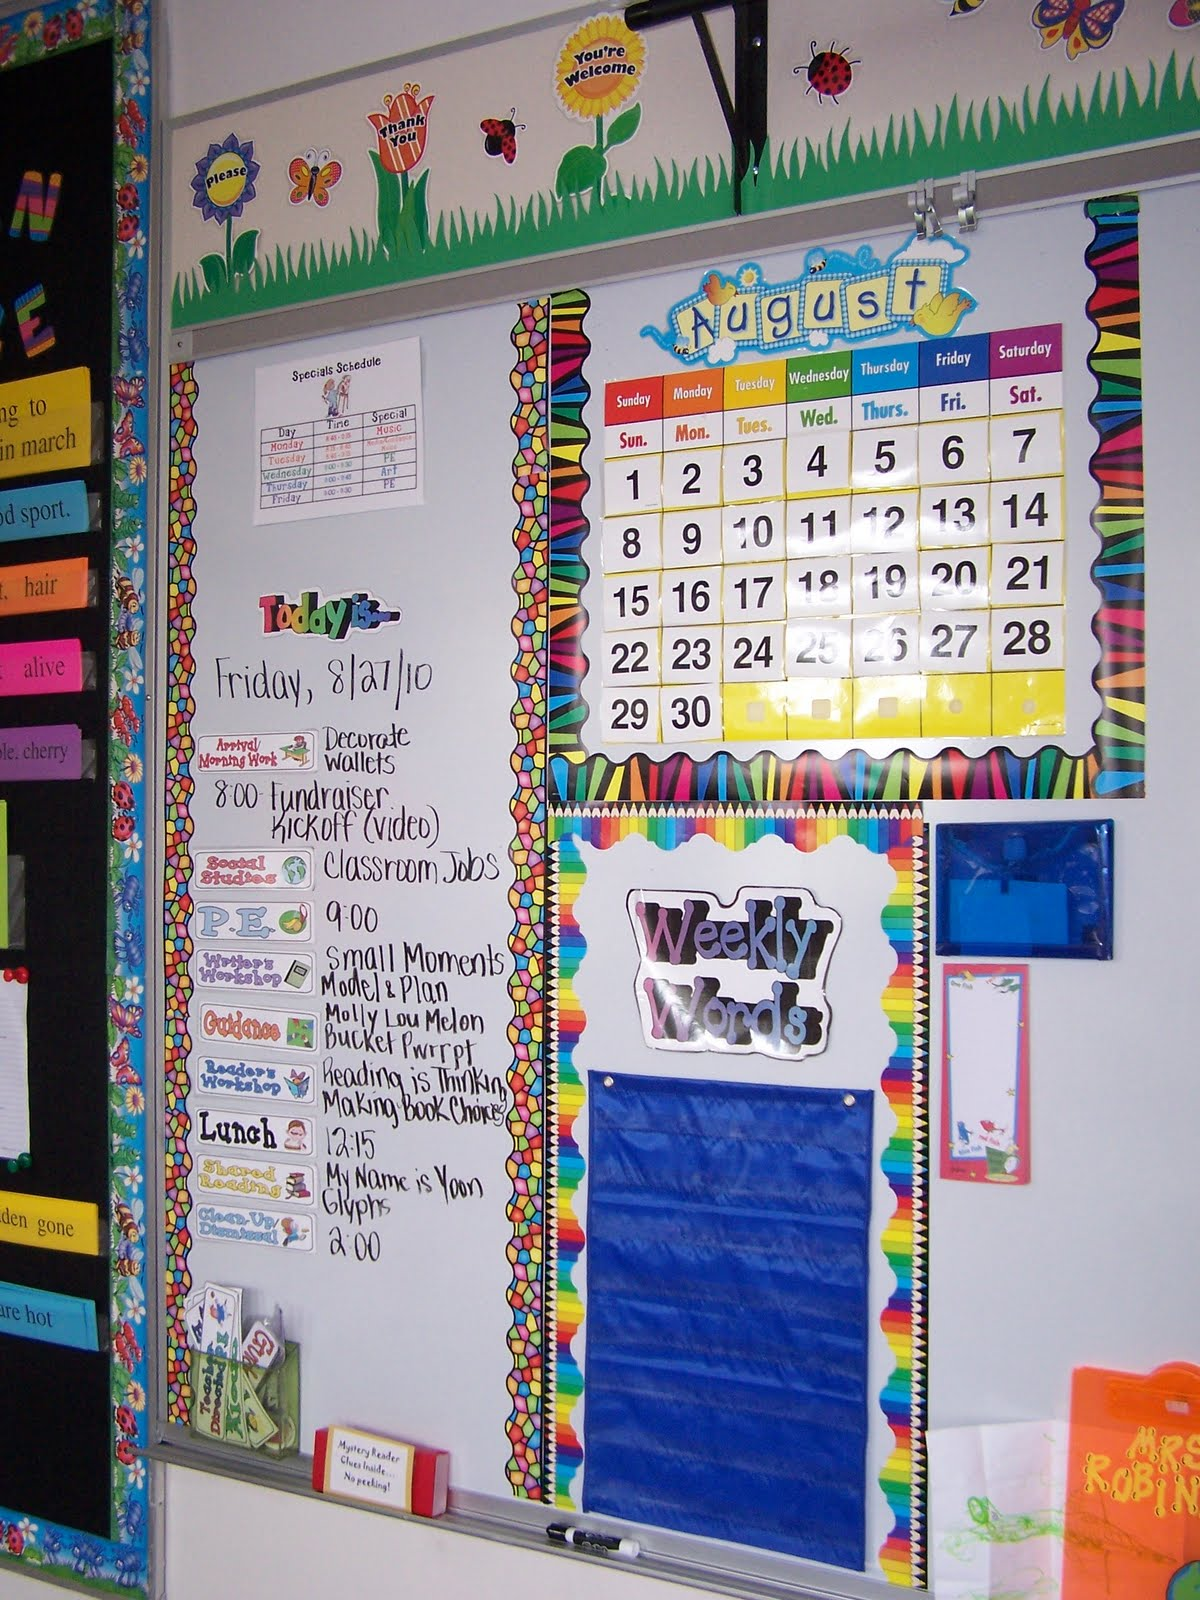 Mrs robinson 39 s classroom blog classroom photos for Bulletin board organization